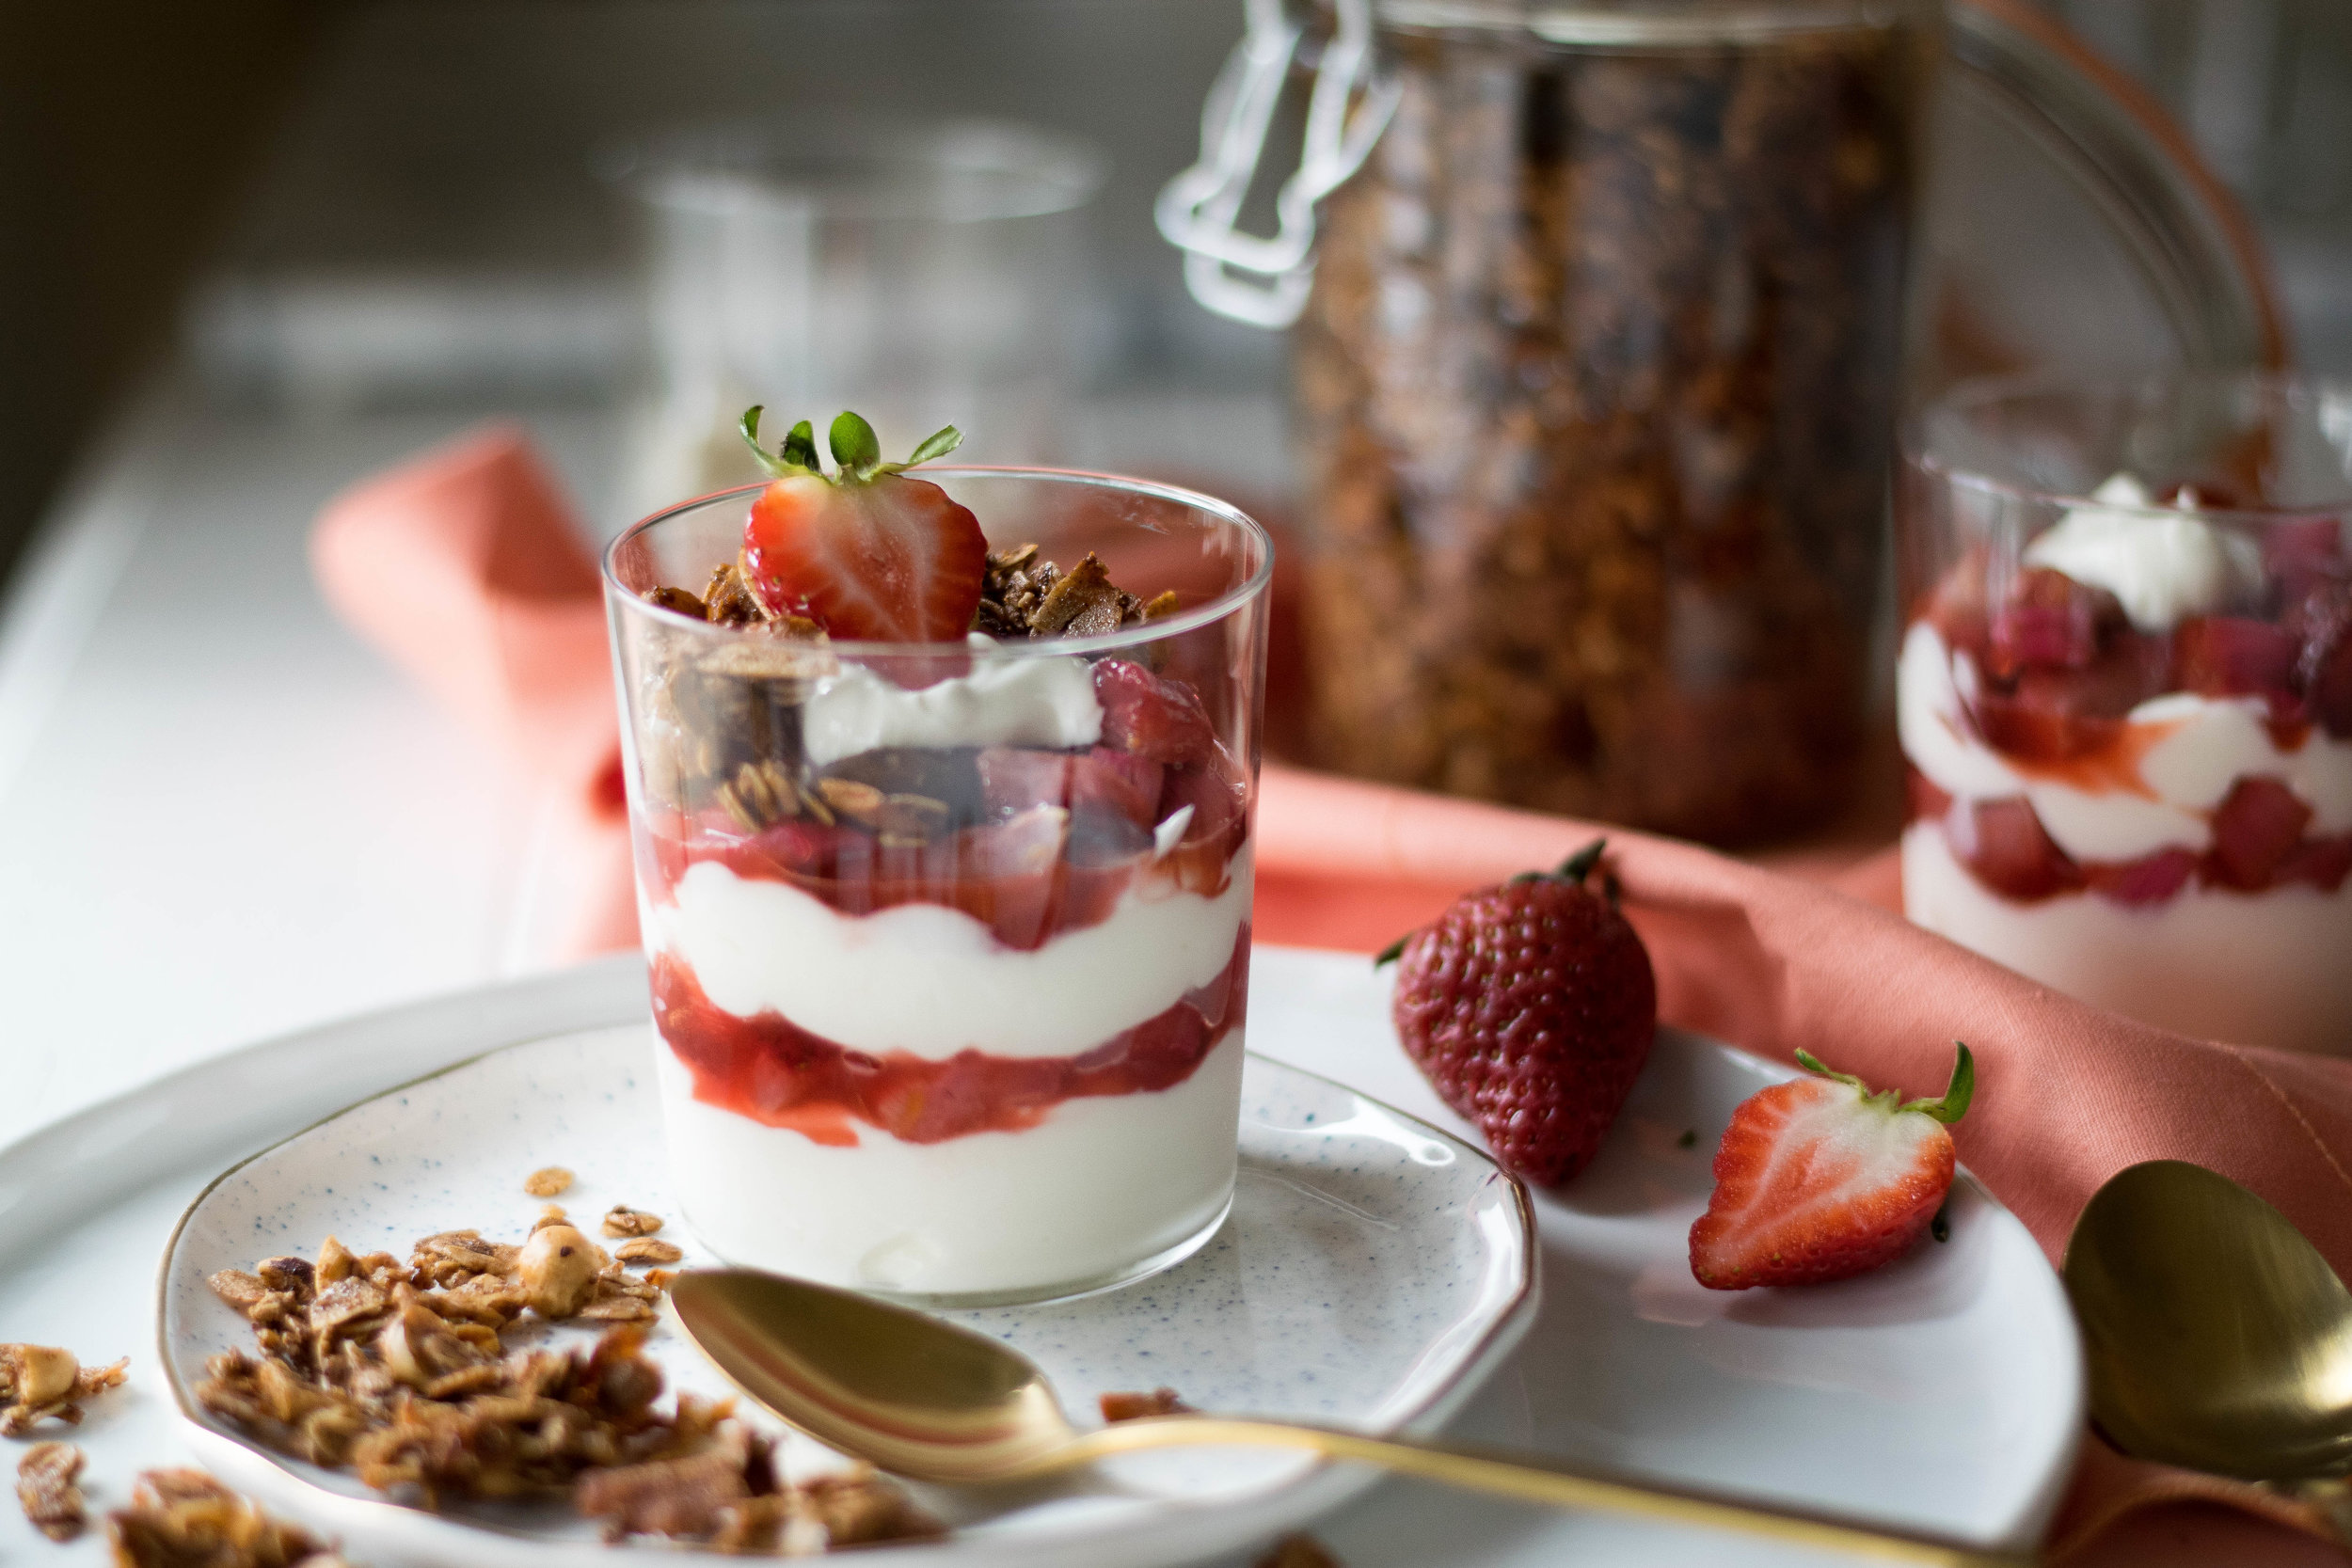 Roasted Rhubarb + Strawberry Yogurt Parfaits | All Purpose Flour Child